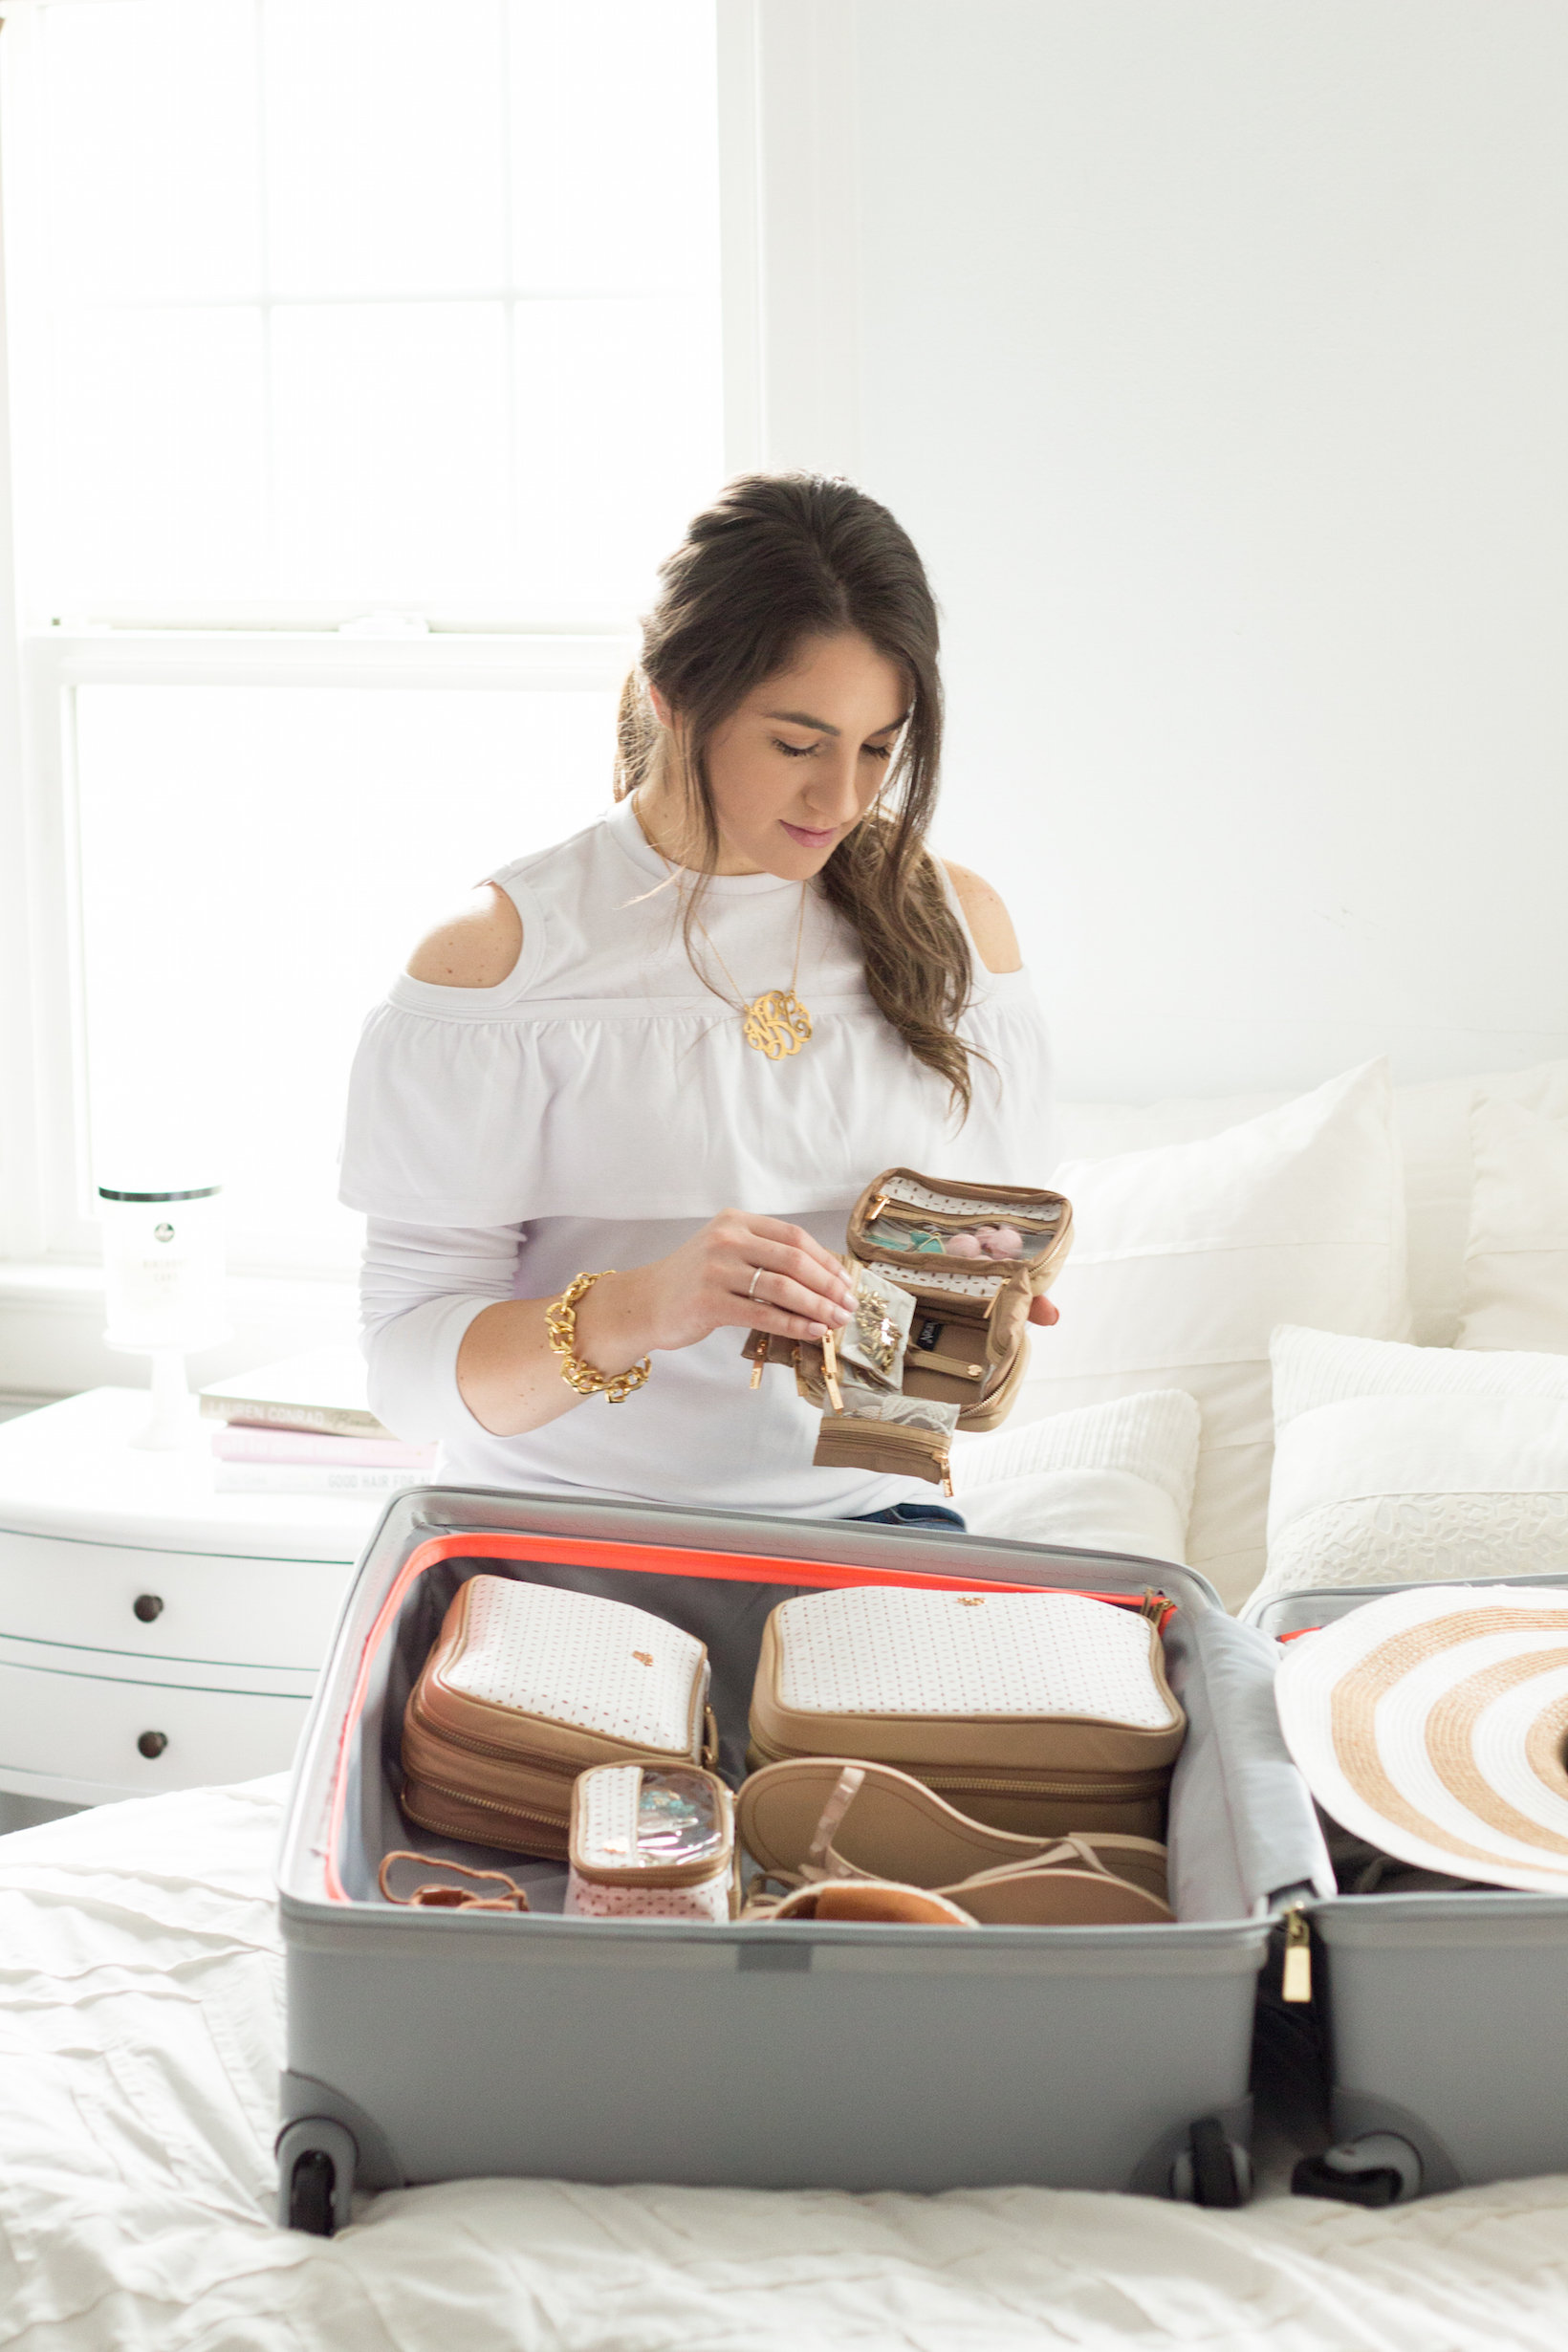 Packing Checklist for Spring Break by popular Portland blogger Topknots and Pearls